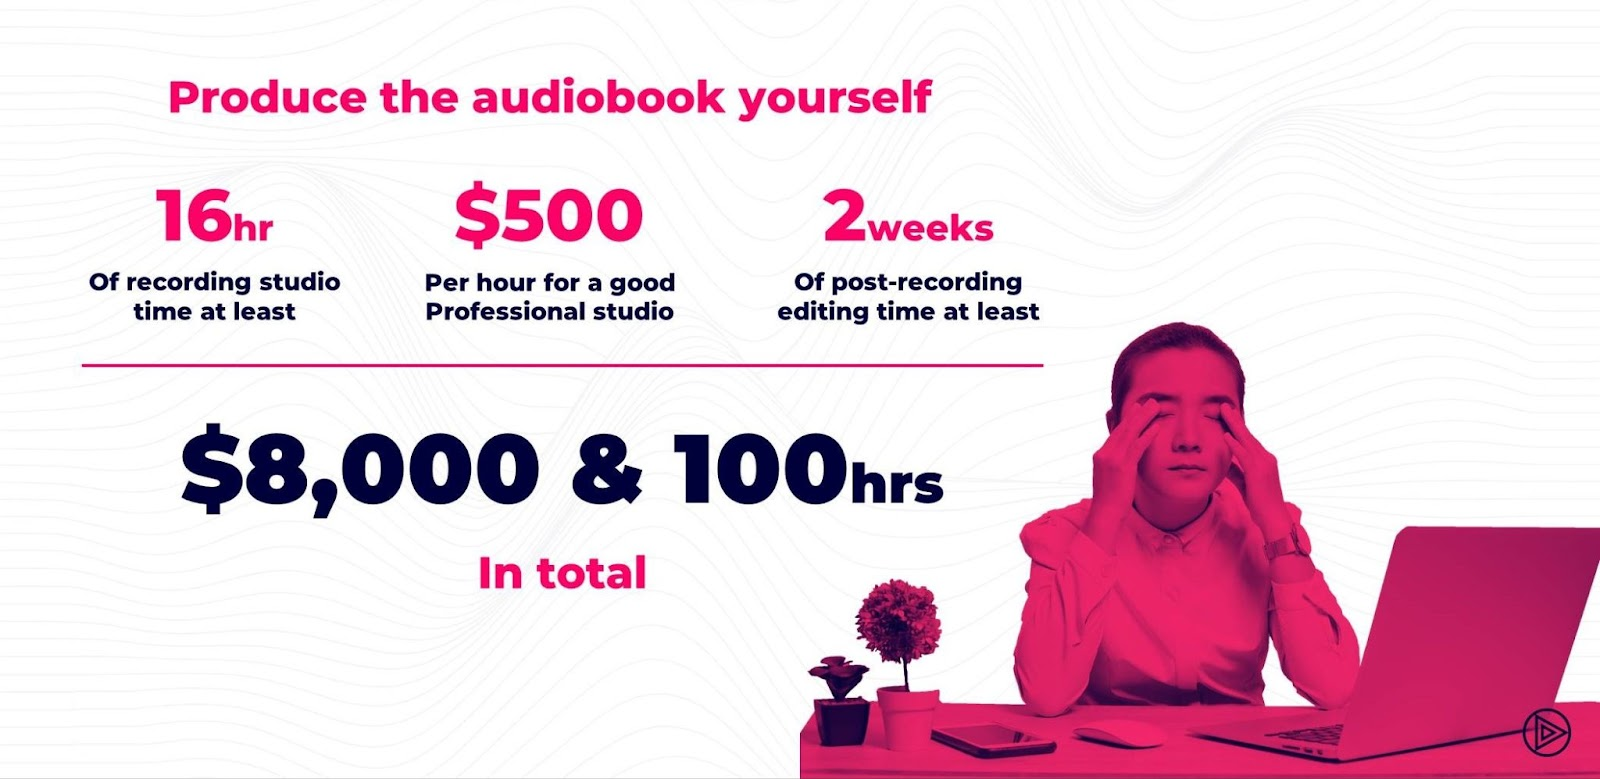 Produce the audiobook yourself